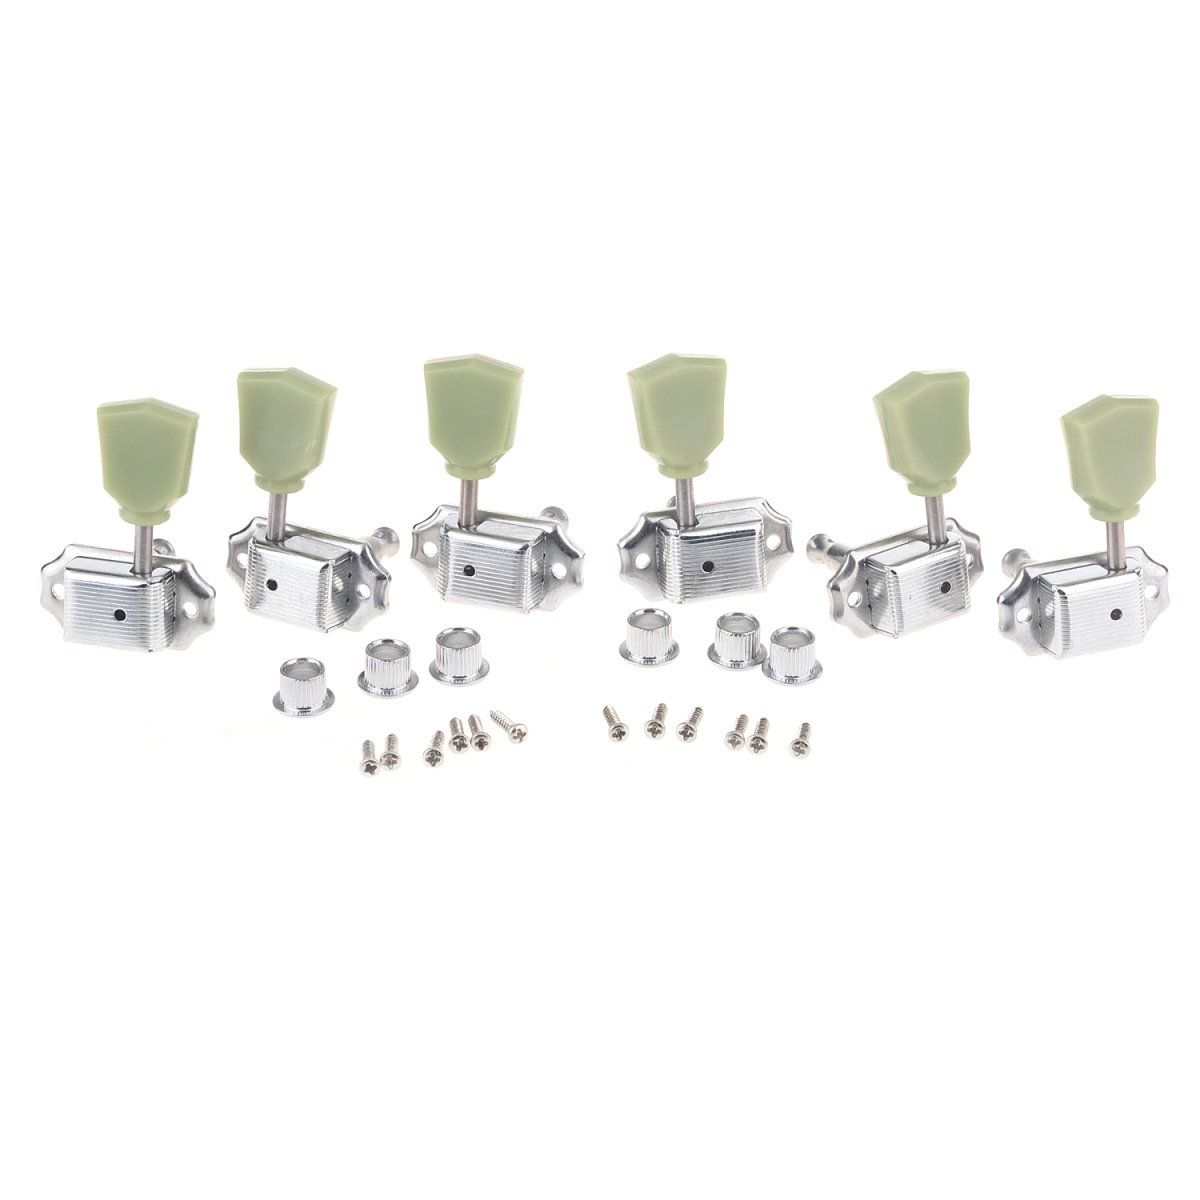 Musiclily 3R3L Vintage Guitar Tuners Machine Heads Tuning Keys Pegs Set for Gibson Les Paul LP Epiphone Guitar Parts, Chrome with Keystone Button